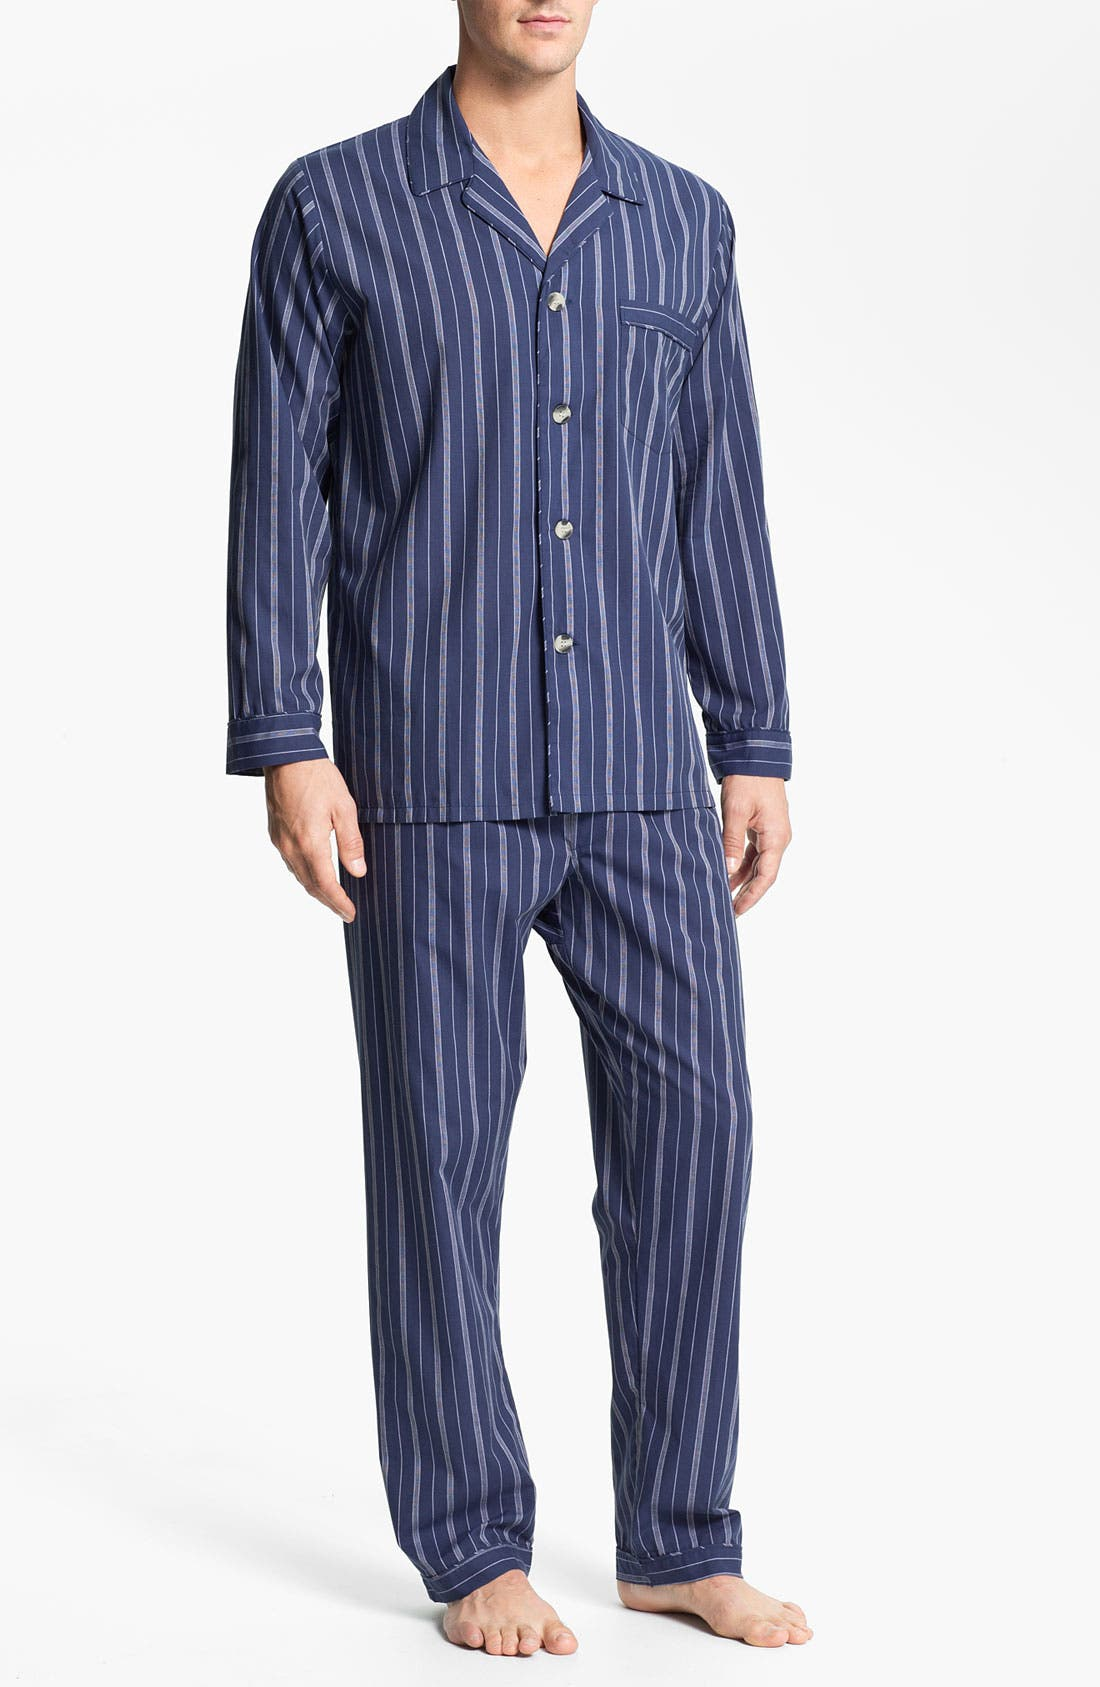 Alternate Image 1 Selected - Majestic International Stripe Easy Care Pajama Set (Big & Tall)